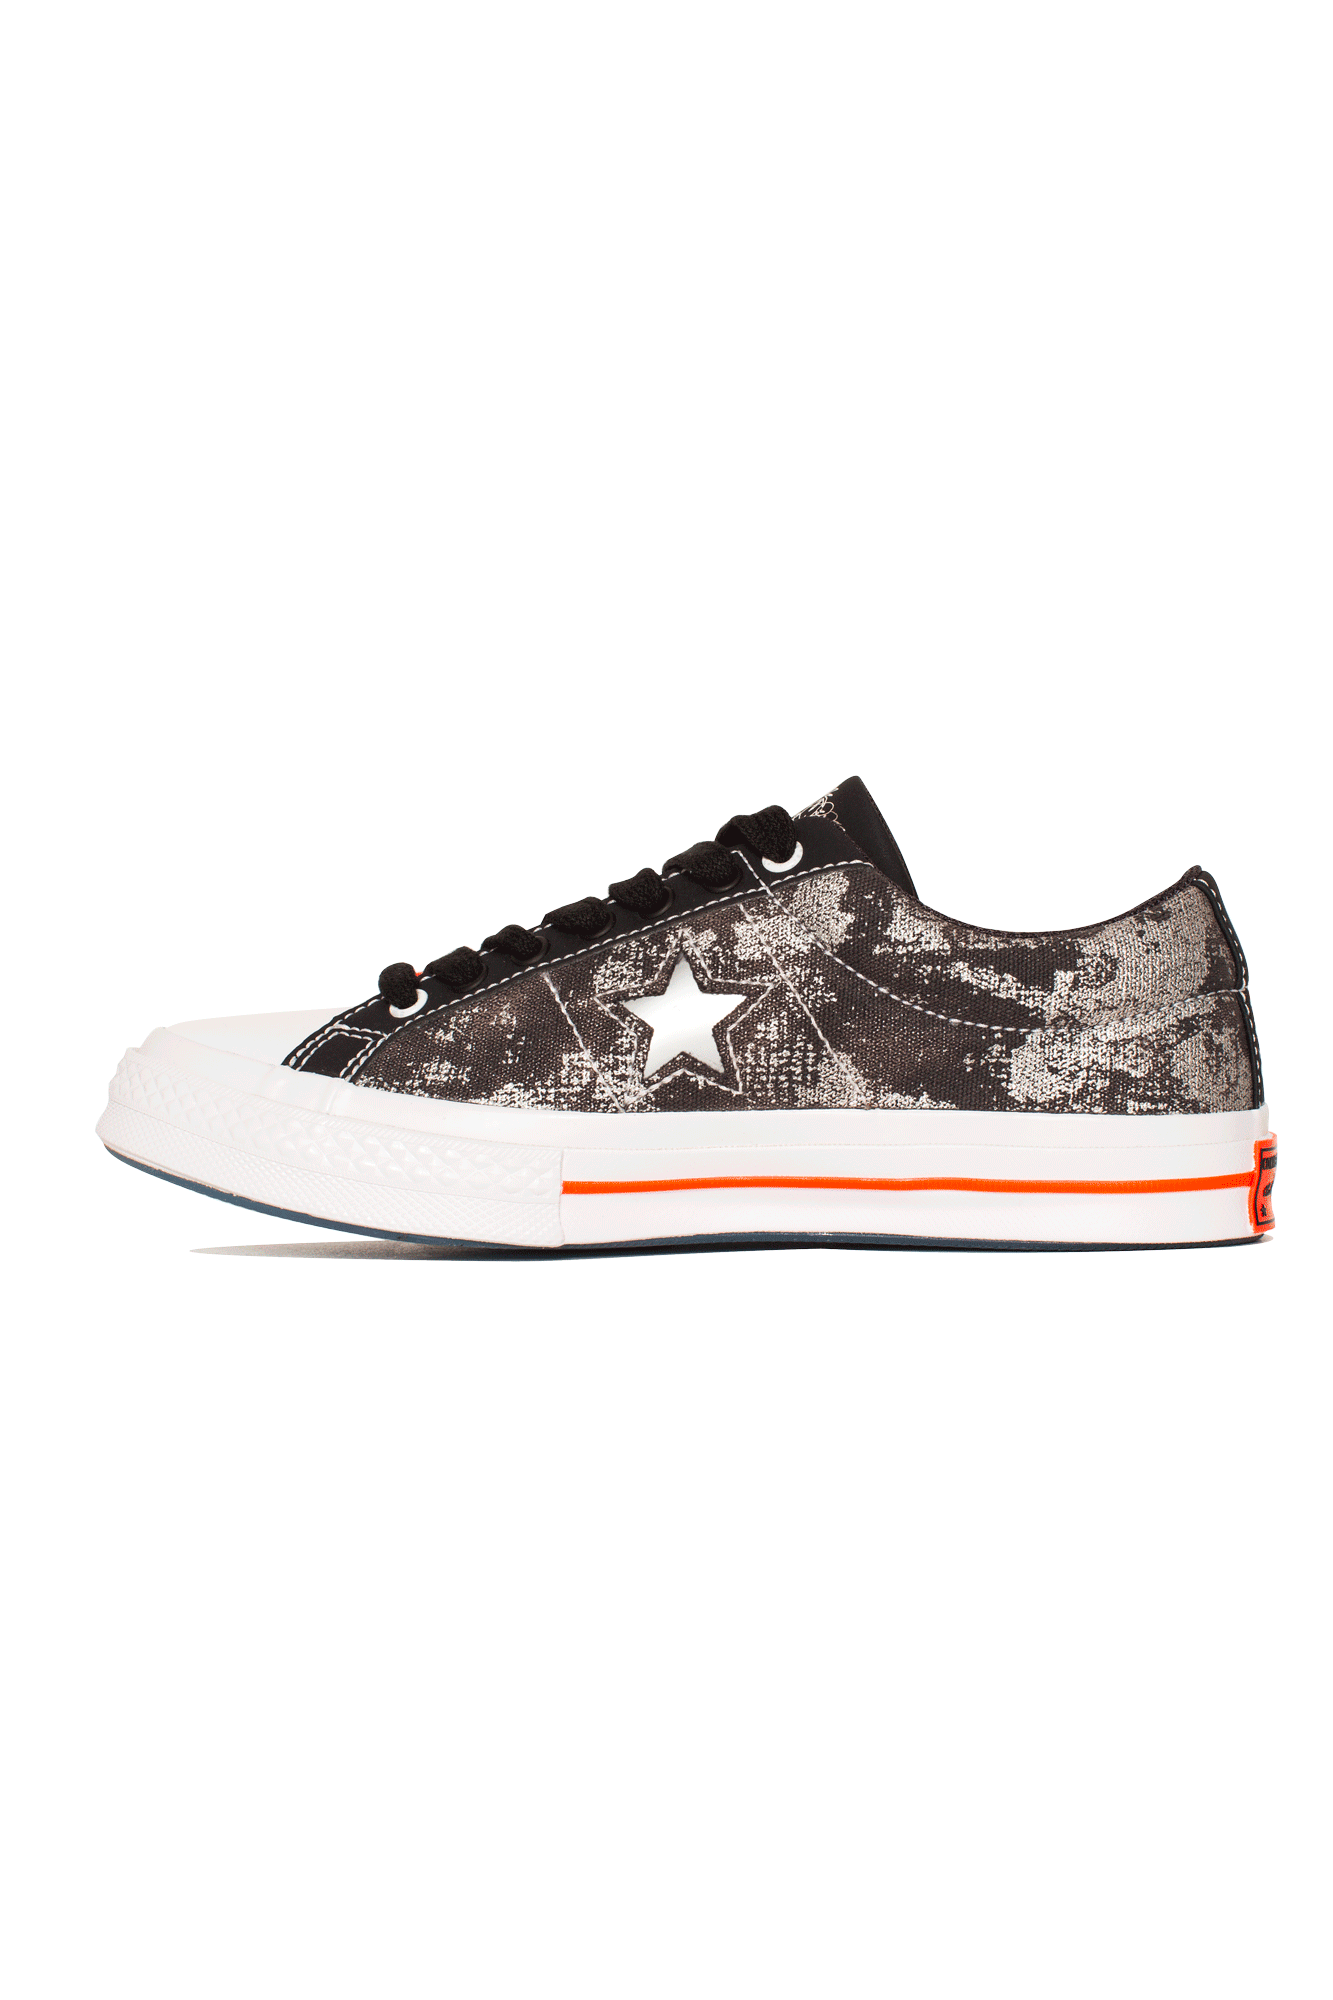 Converse Sneakers One Star OX X Yung Lean Grey 165743C#000#C0009#7 - One Block Down